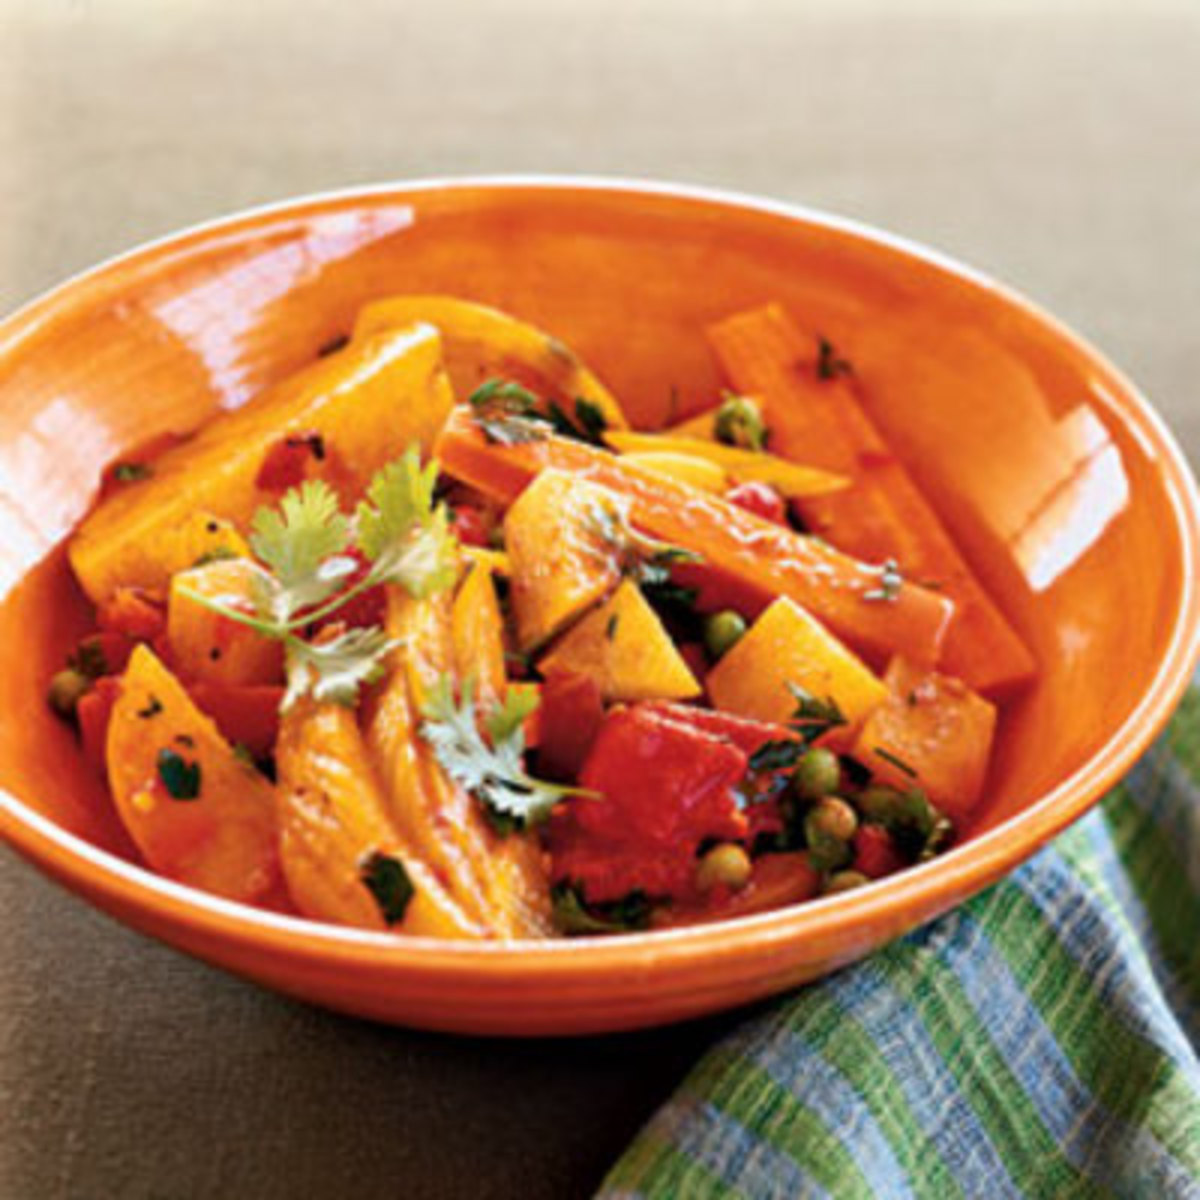 Turmeric blended into vegetables adds to and enhances the taste of the veggies.